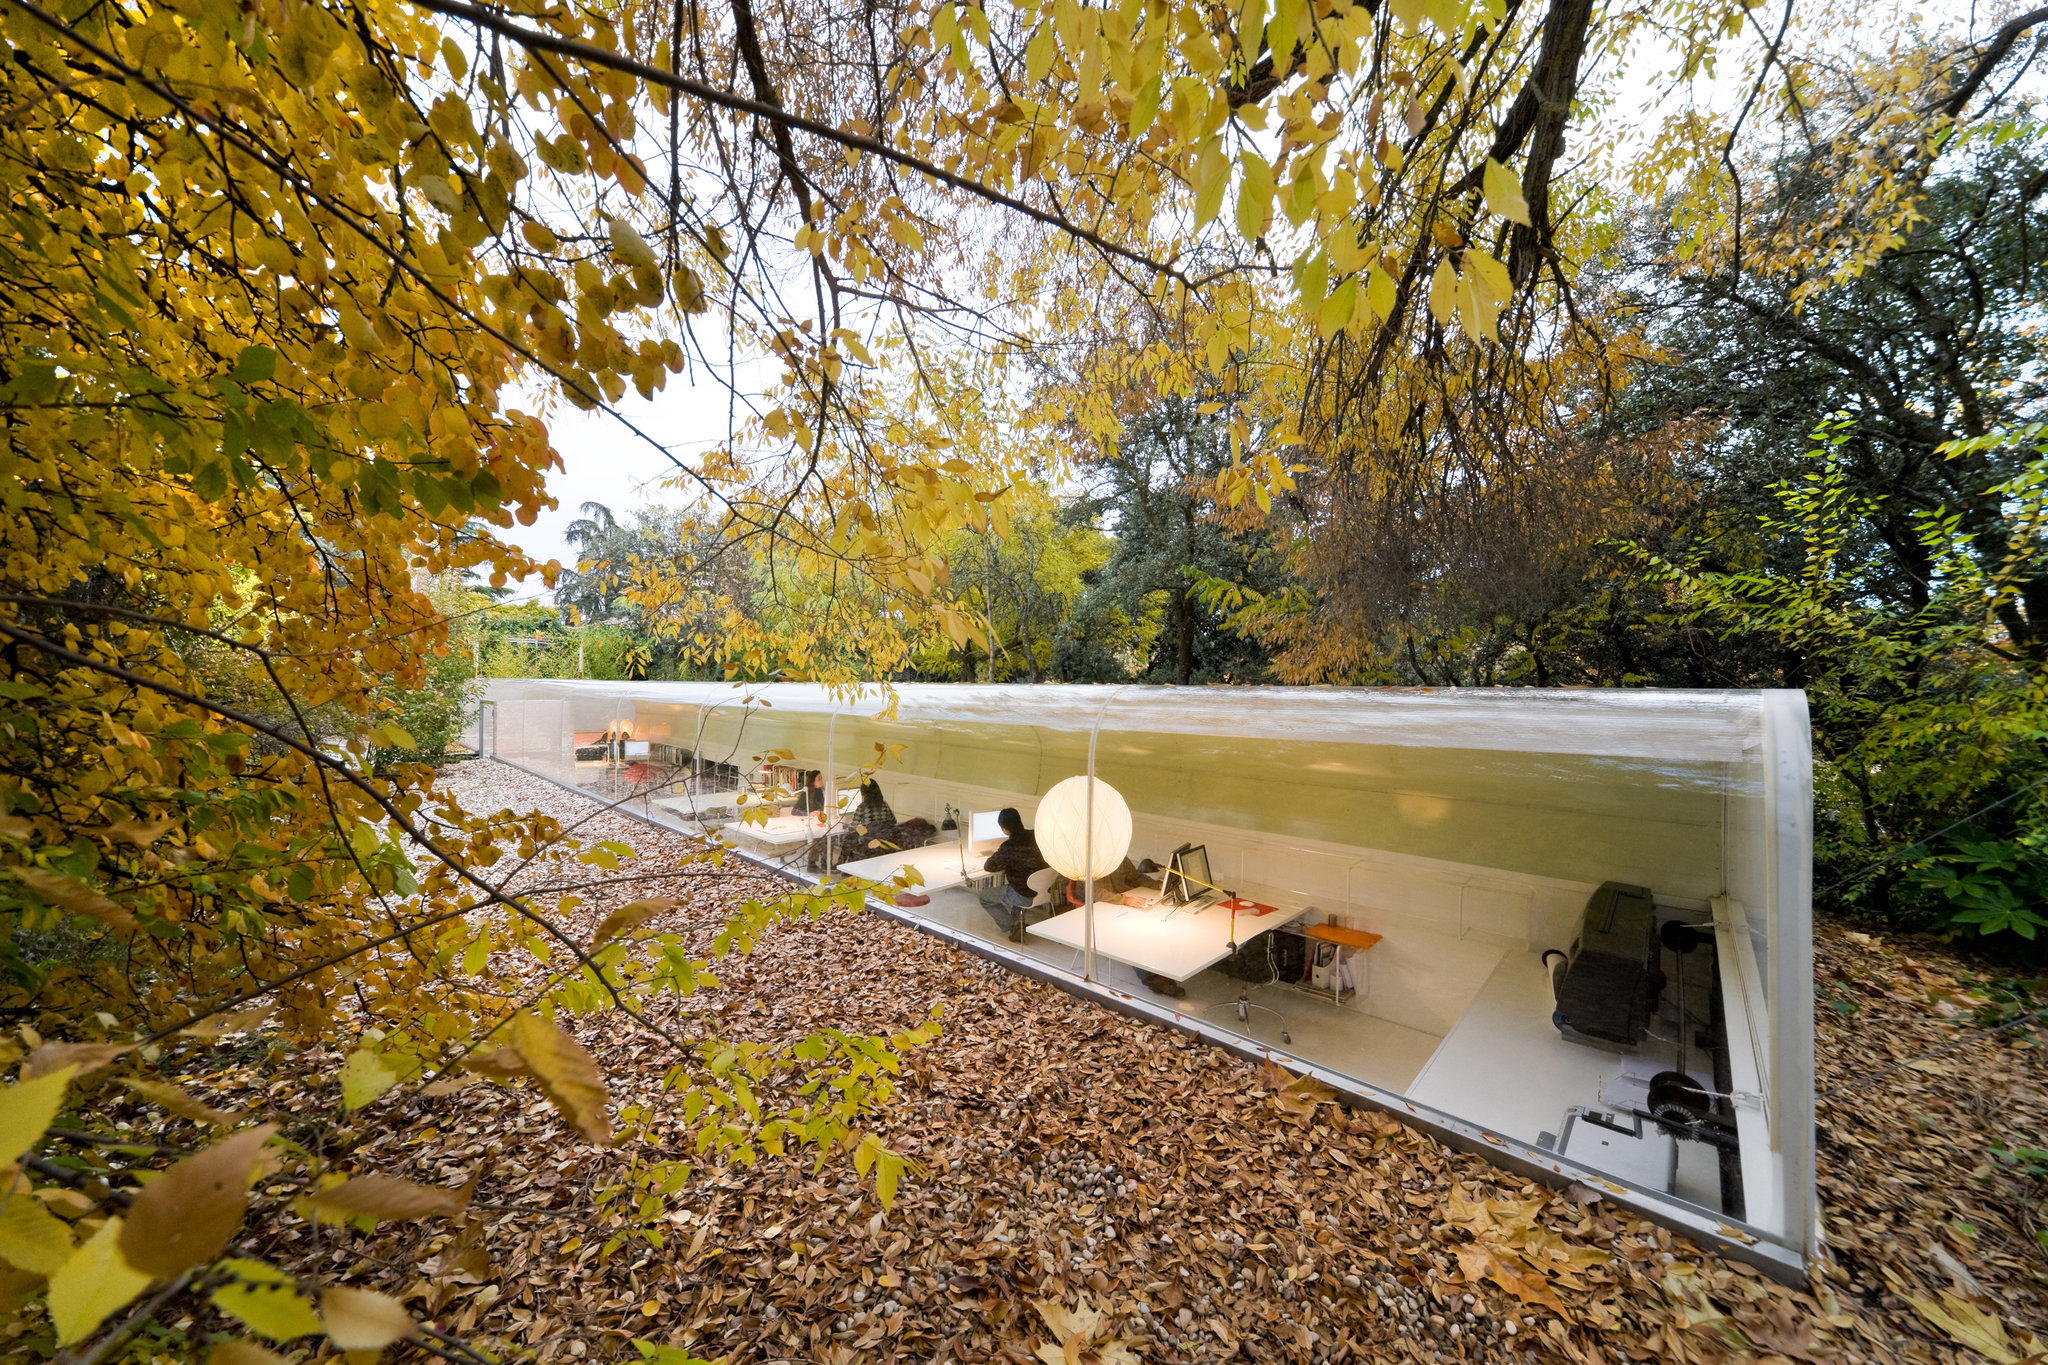 Selgas Cano Architecture – In The Woods 15 Minutes Outside Of Madrid Spain.